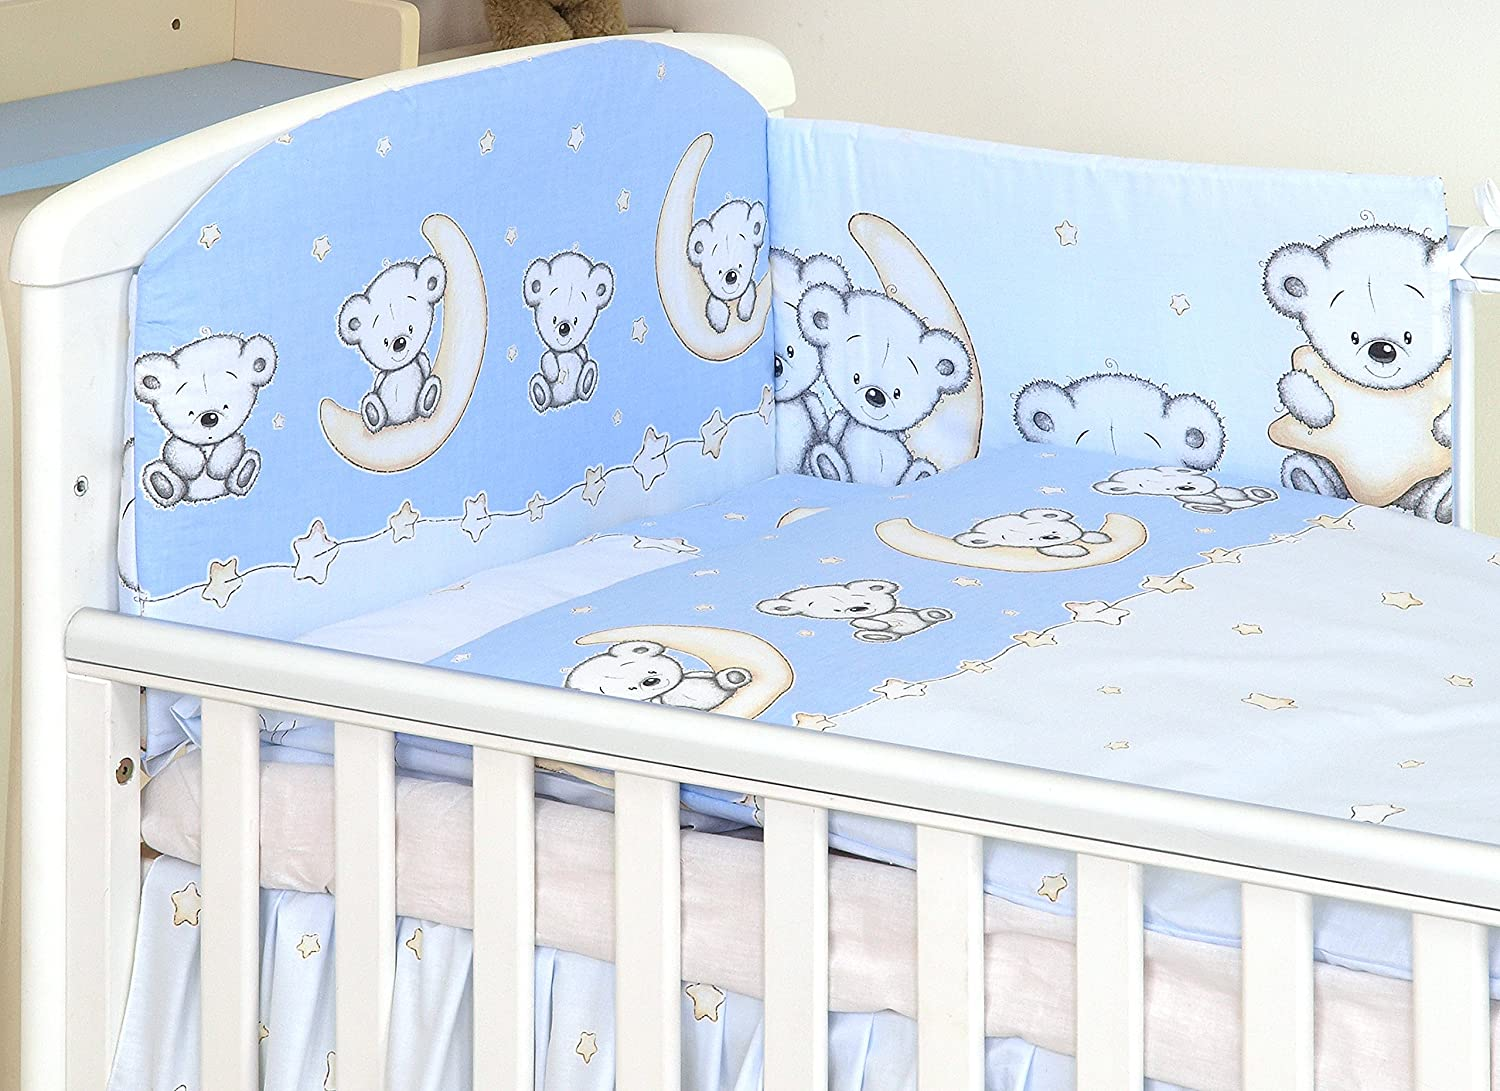 5 pc Baby Bedding Set for Cot 120X60 Or Cot Bed 140X70cm Inc -Duvet+Pillow+Duvet Cover+Pillow CASE+ Bumper- Teddy/OWL/Marine/Cars Pattern and More (Cot 120X60, Teddy Moon Grey) AMY